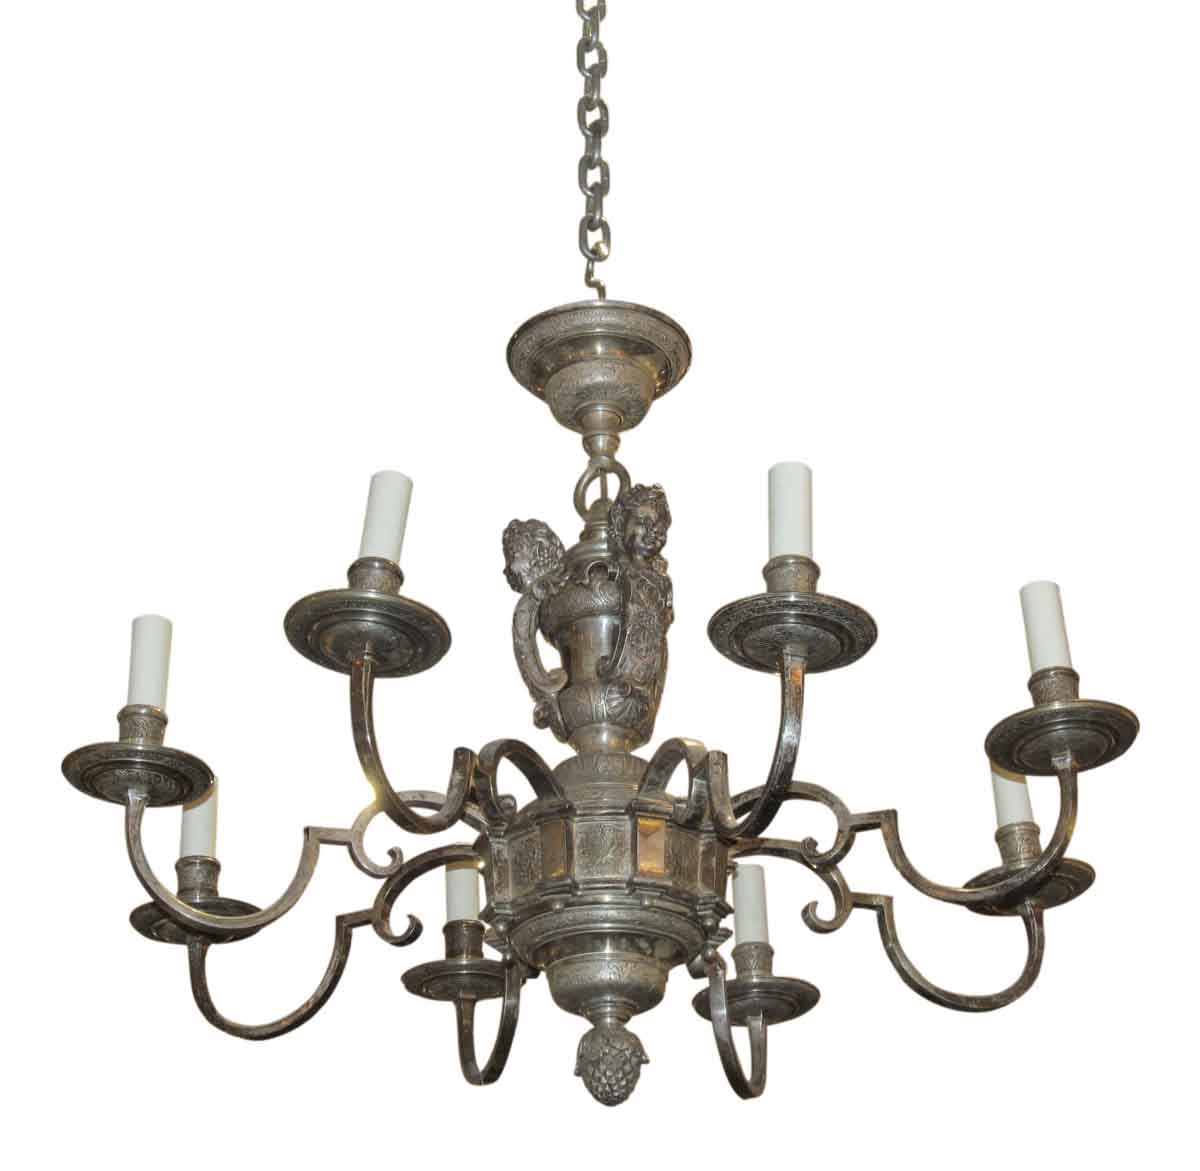 1900s Silver Plated Caldwell Chandelier Chandeliers